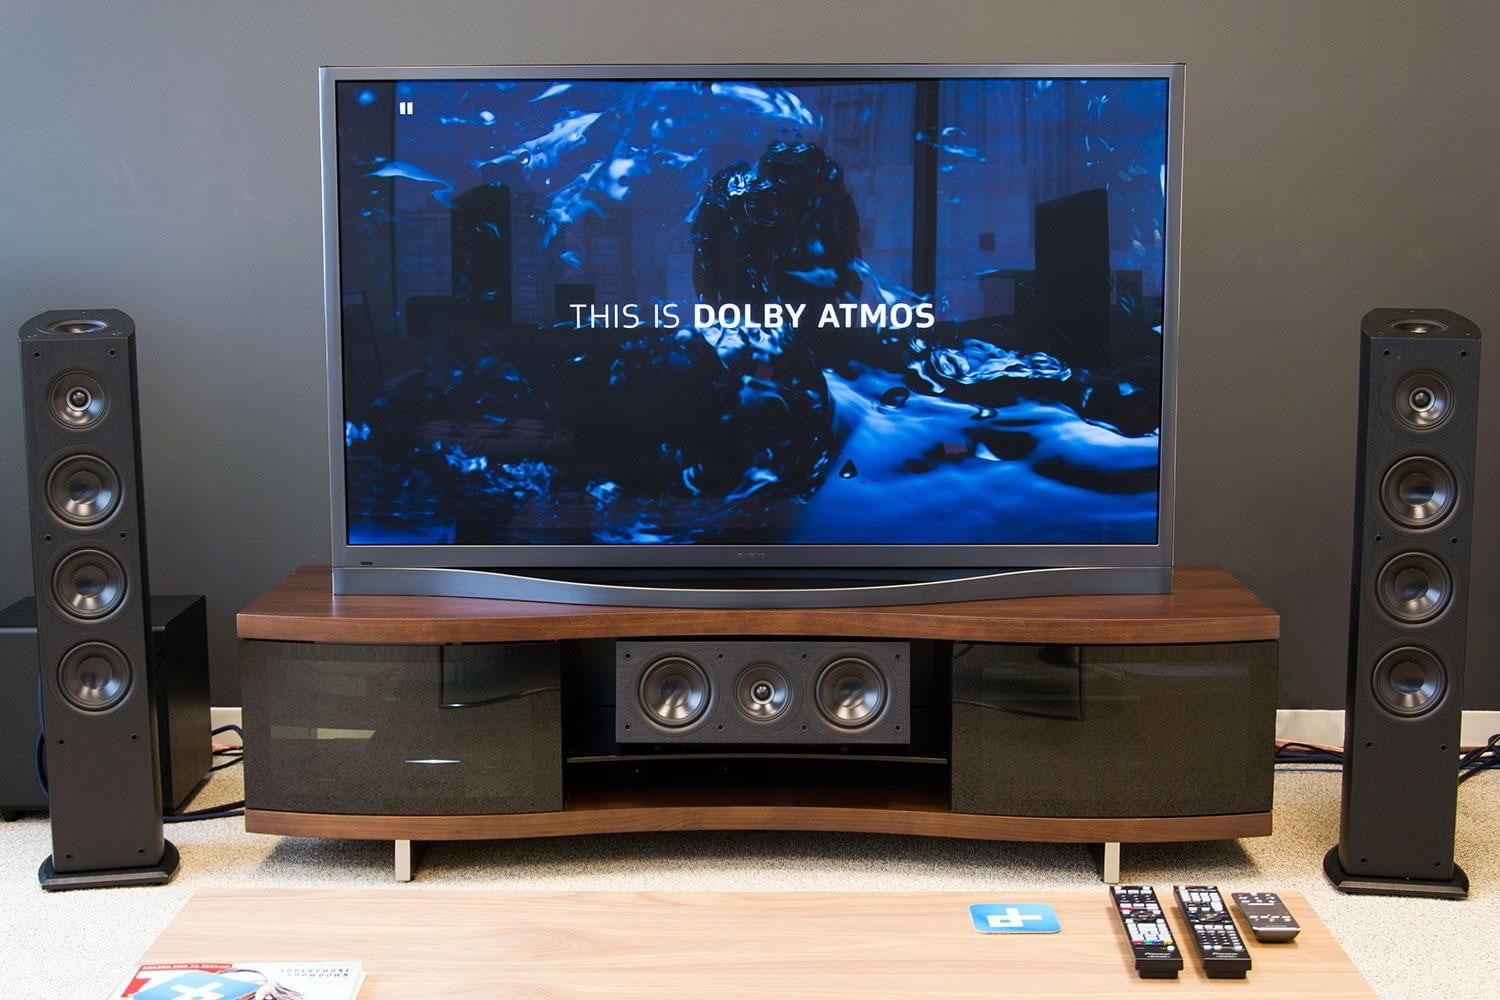 How To Know If You've Got Great Dolby Atmos Sound | Digital Trends